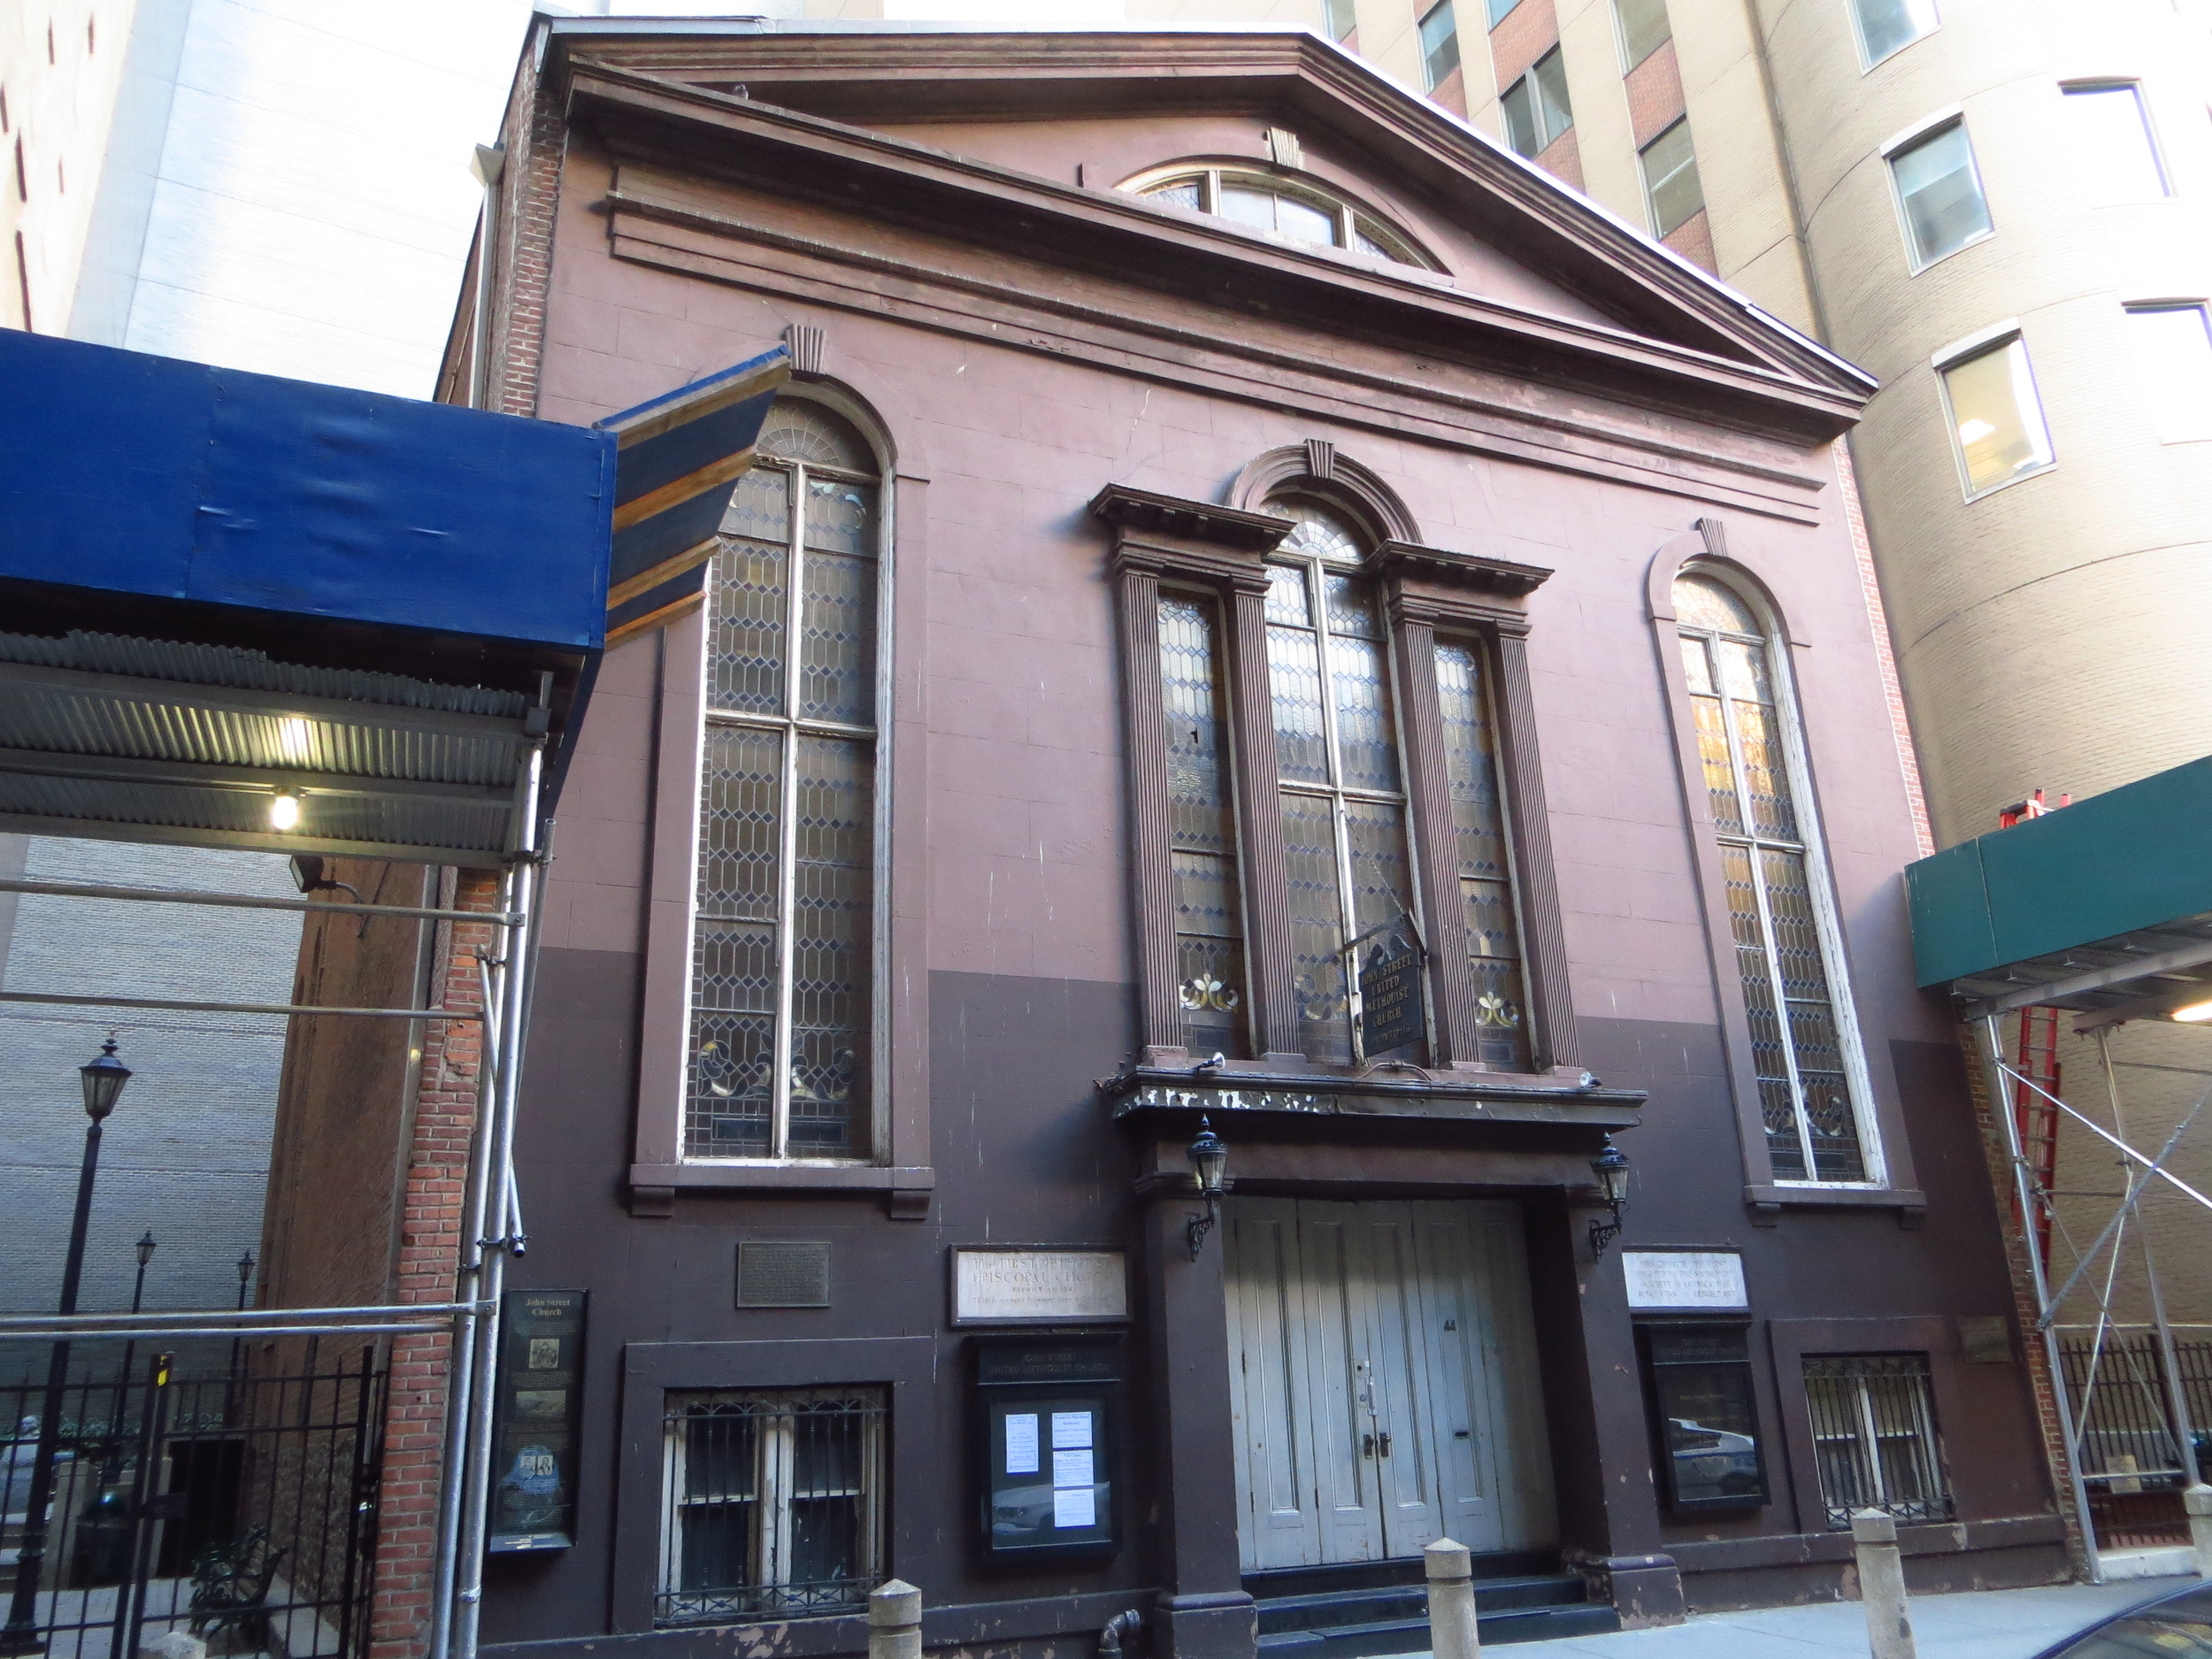 John St. Methodist Church (oldest Methodist Assembly in the US)